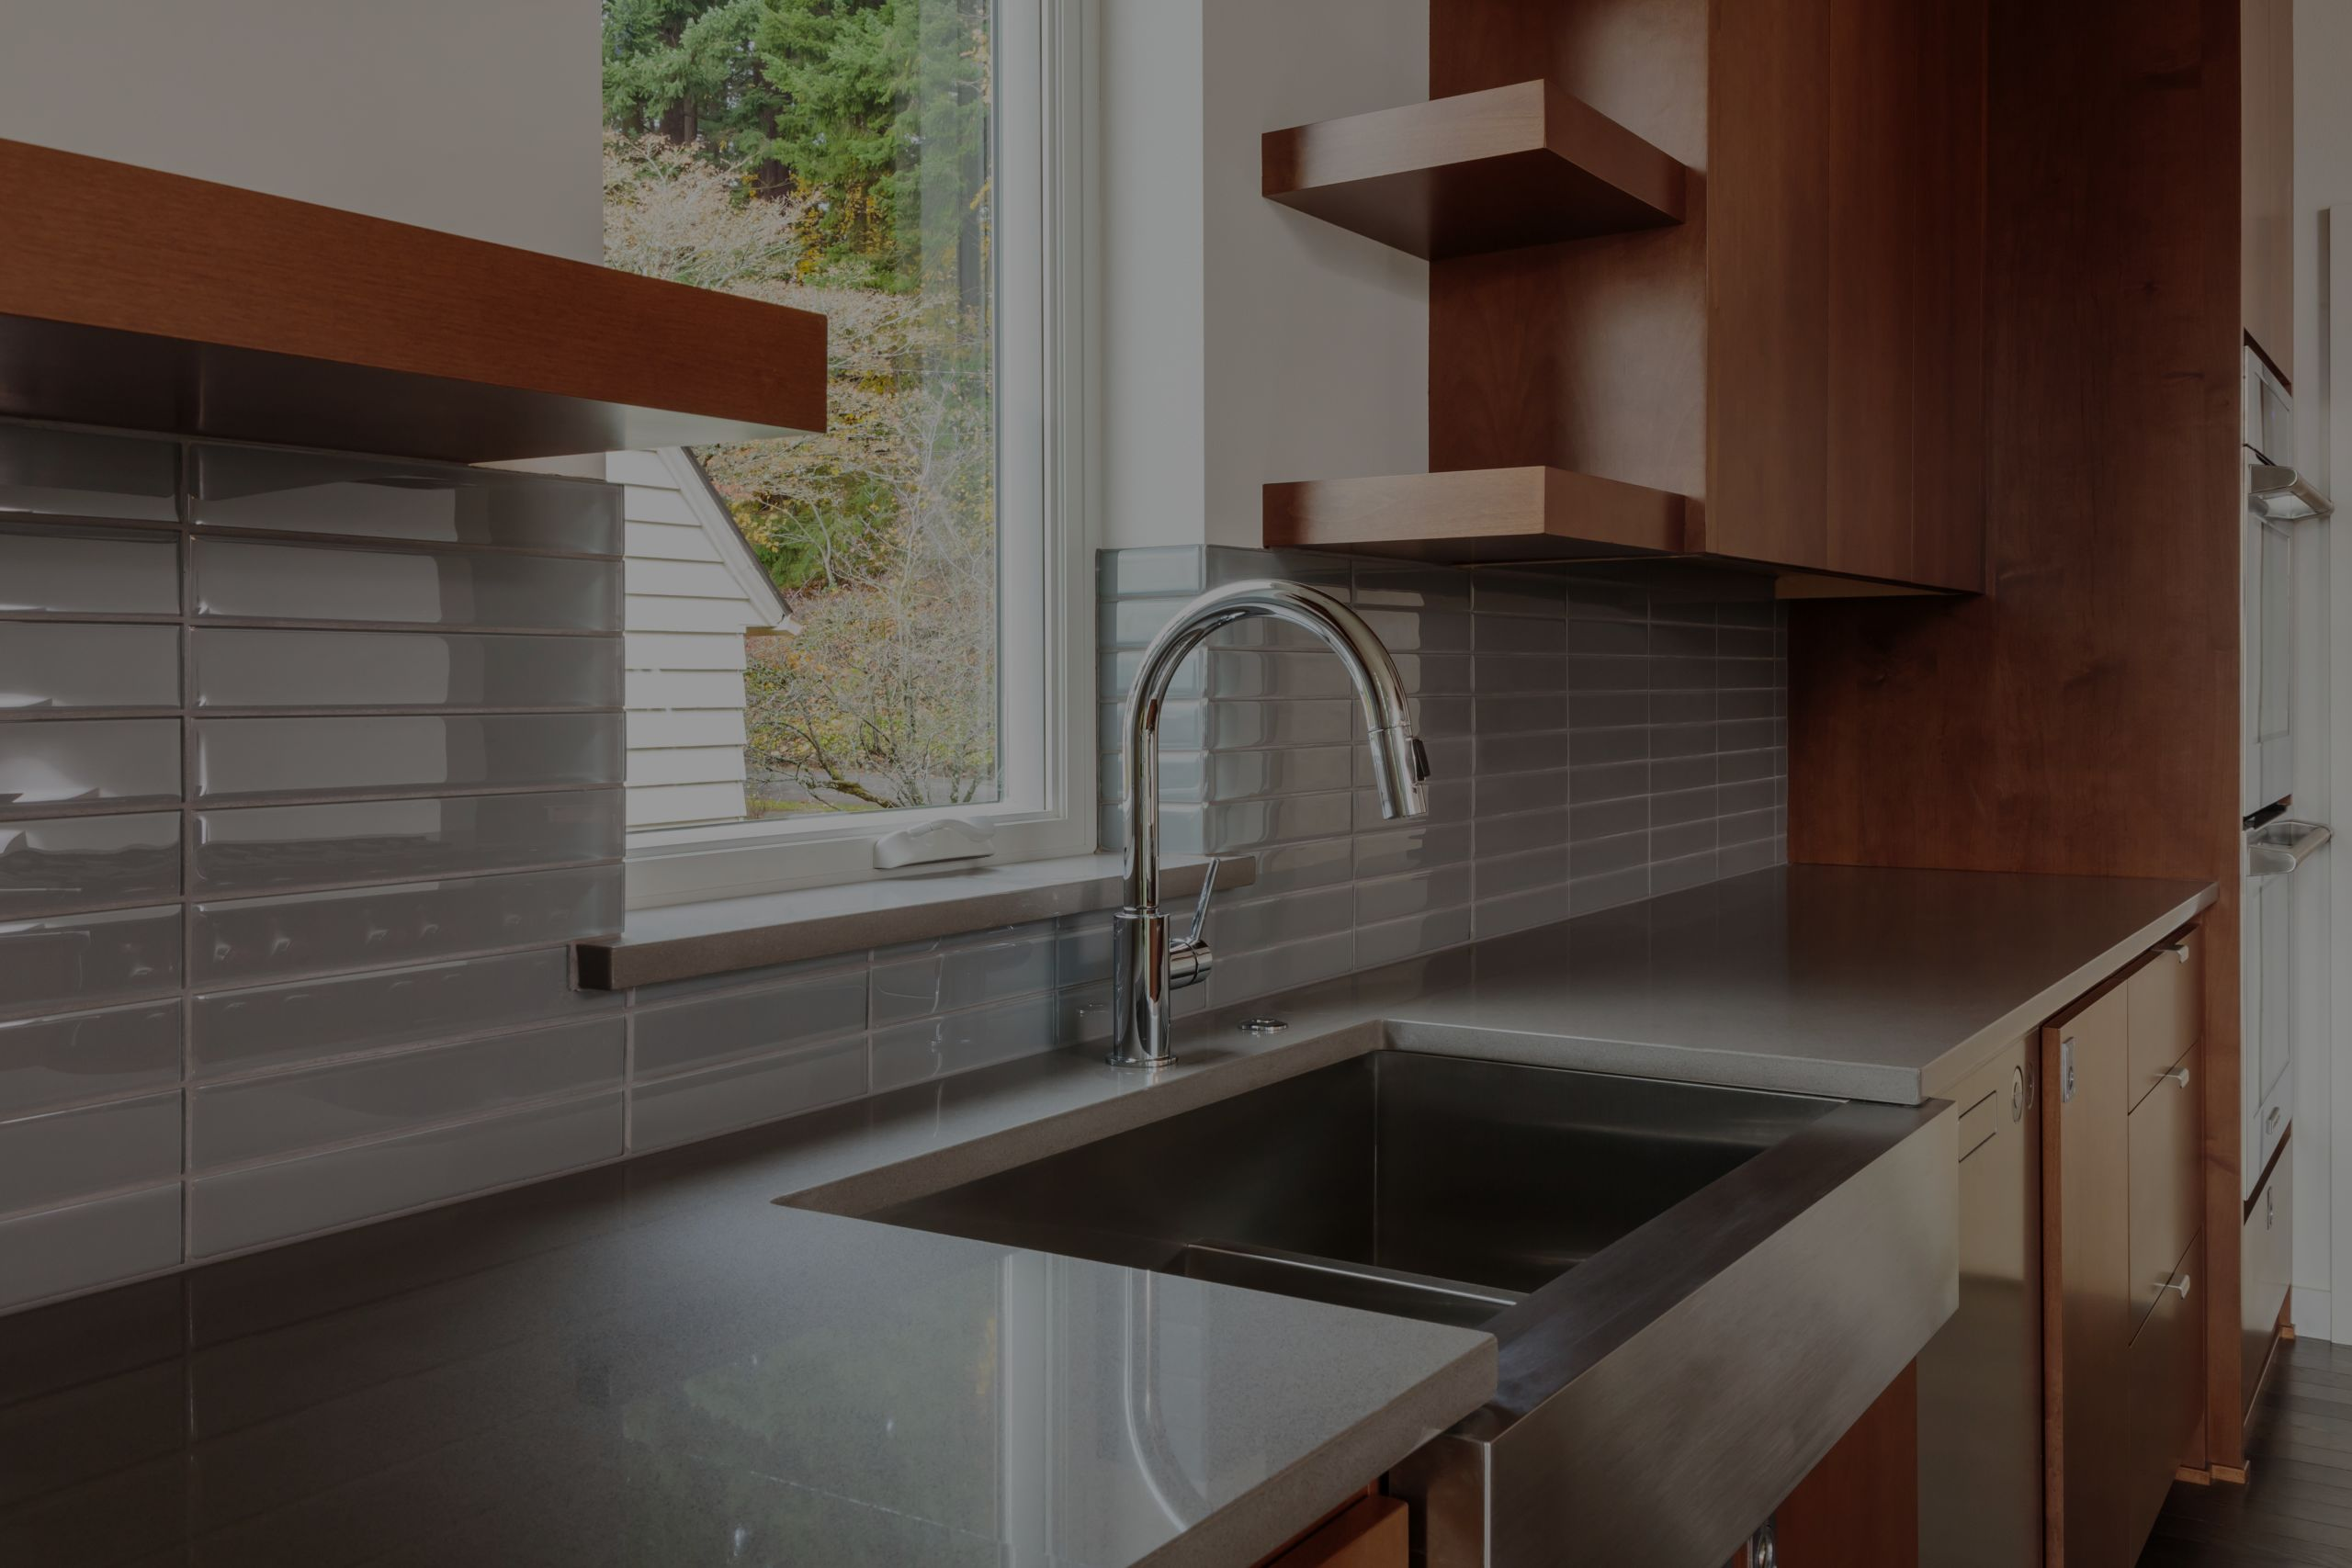 Tips on Preparing Your Home for Sale: Kitchen and Bathroom